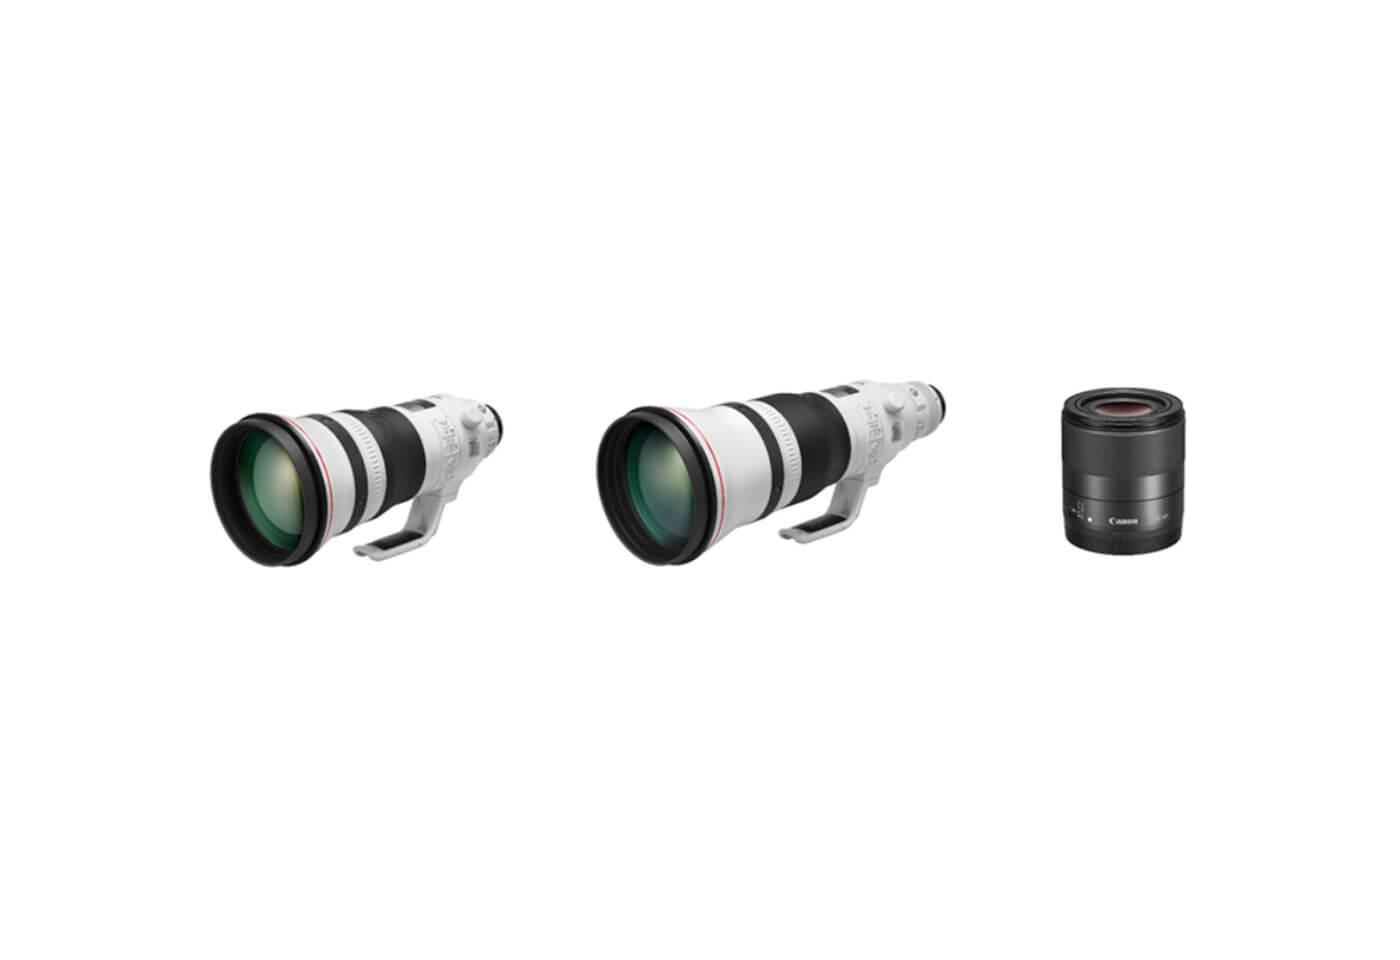 Product image of EF 400mm f/2.8L IS III USM, EF 600mm f/4L IS III USM and EF-M 32mm f/1.4 STM